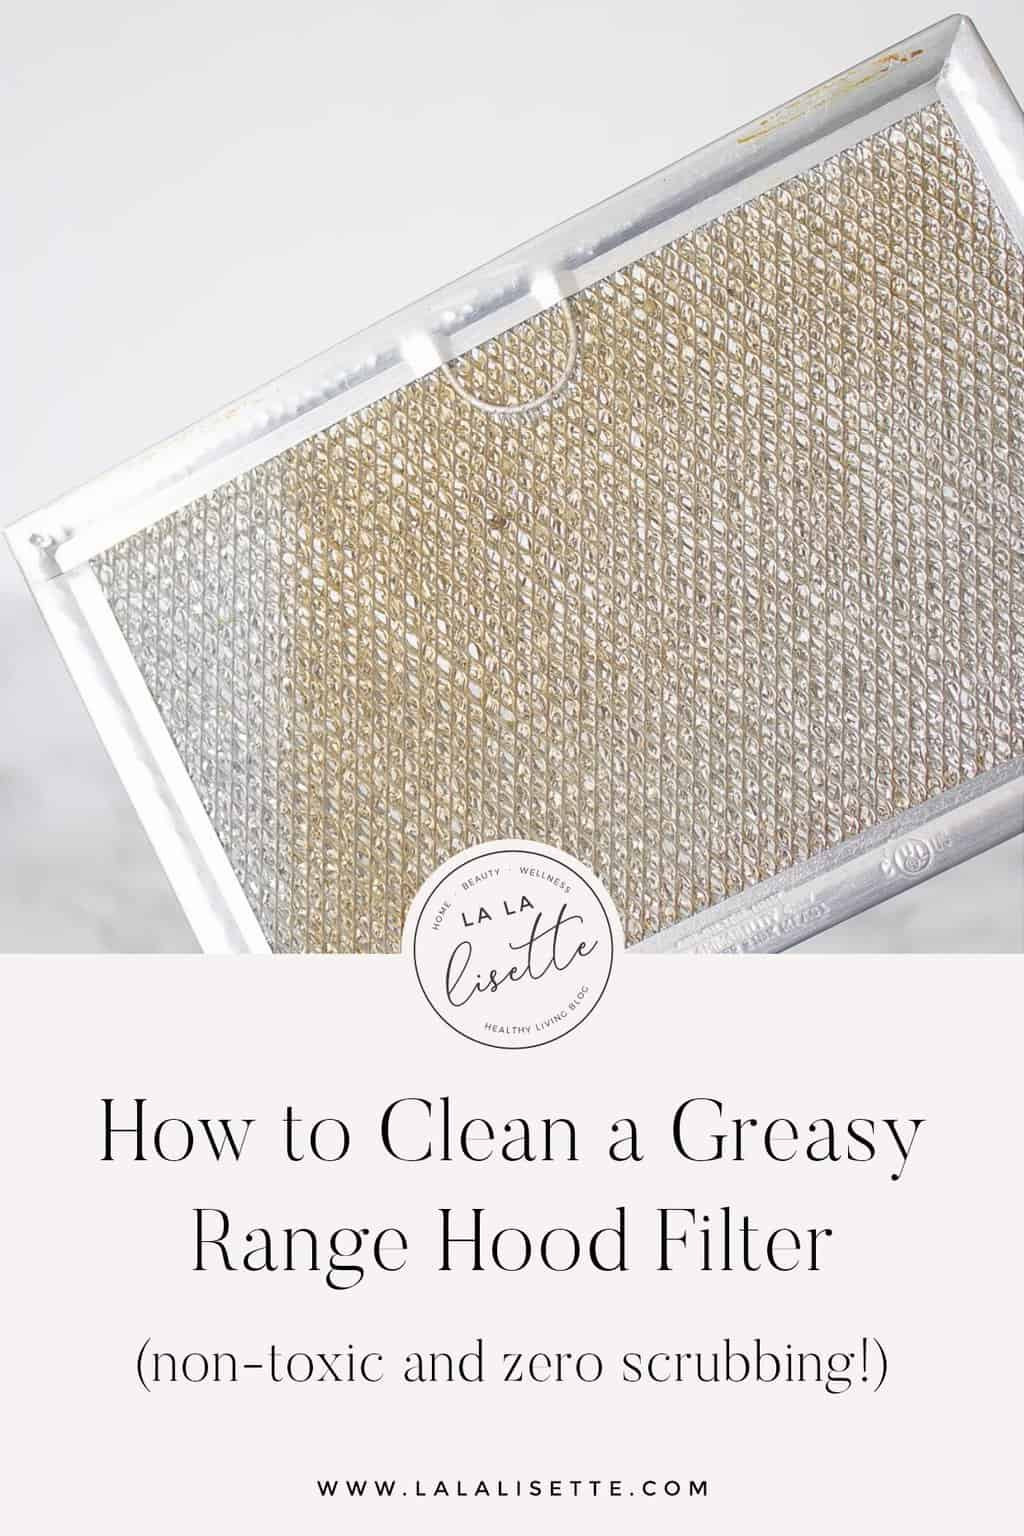 image of greasy range hood filter with text: How to Clean a Greasy Range Hood Filter